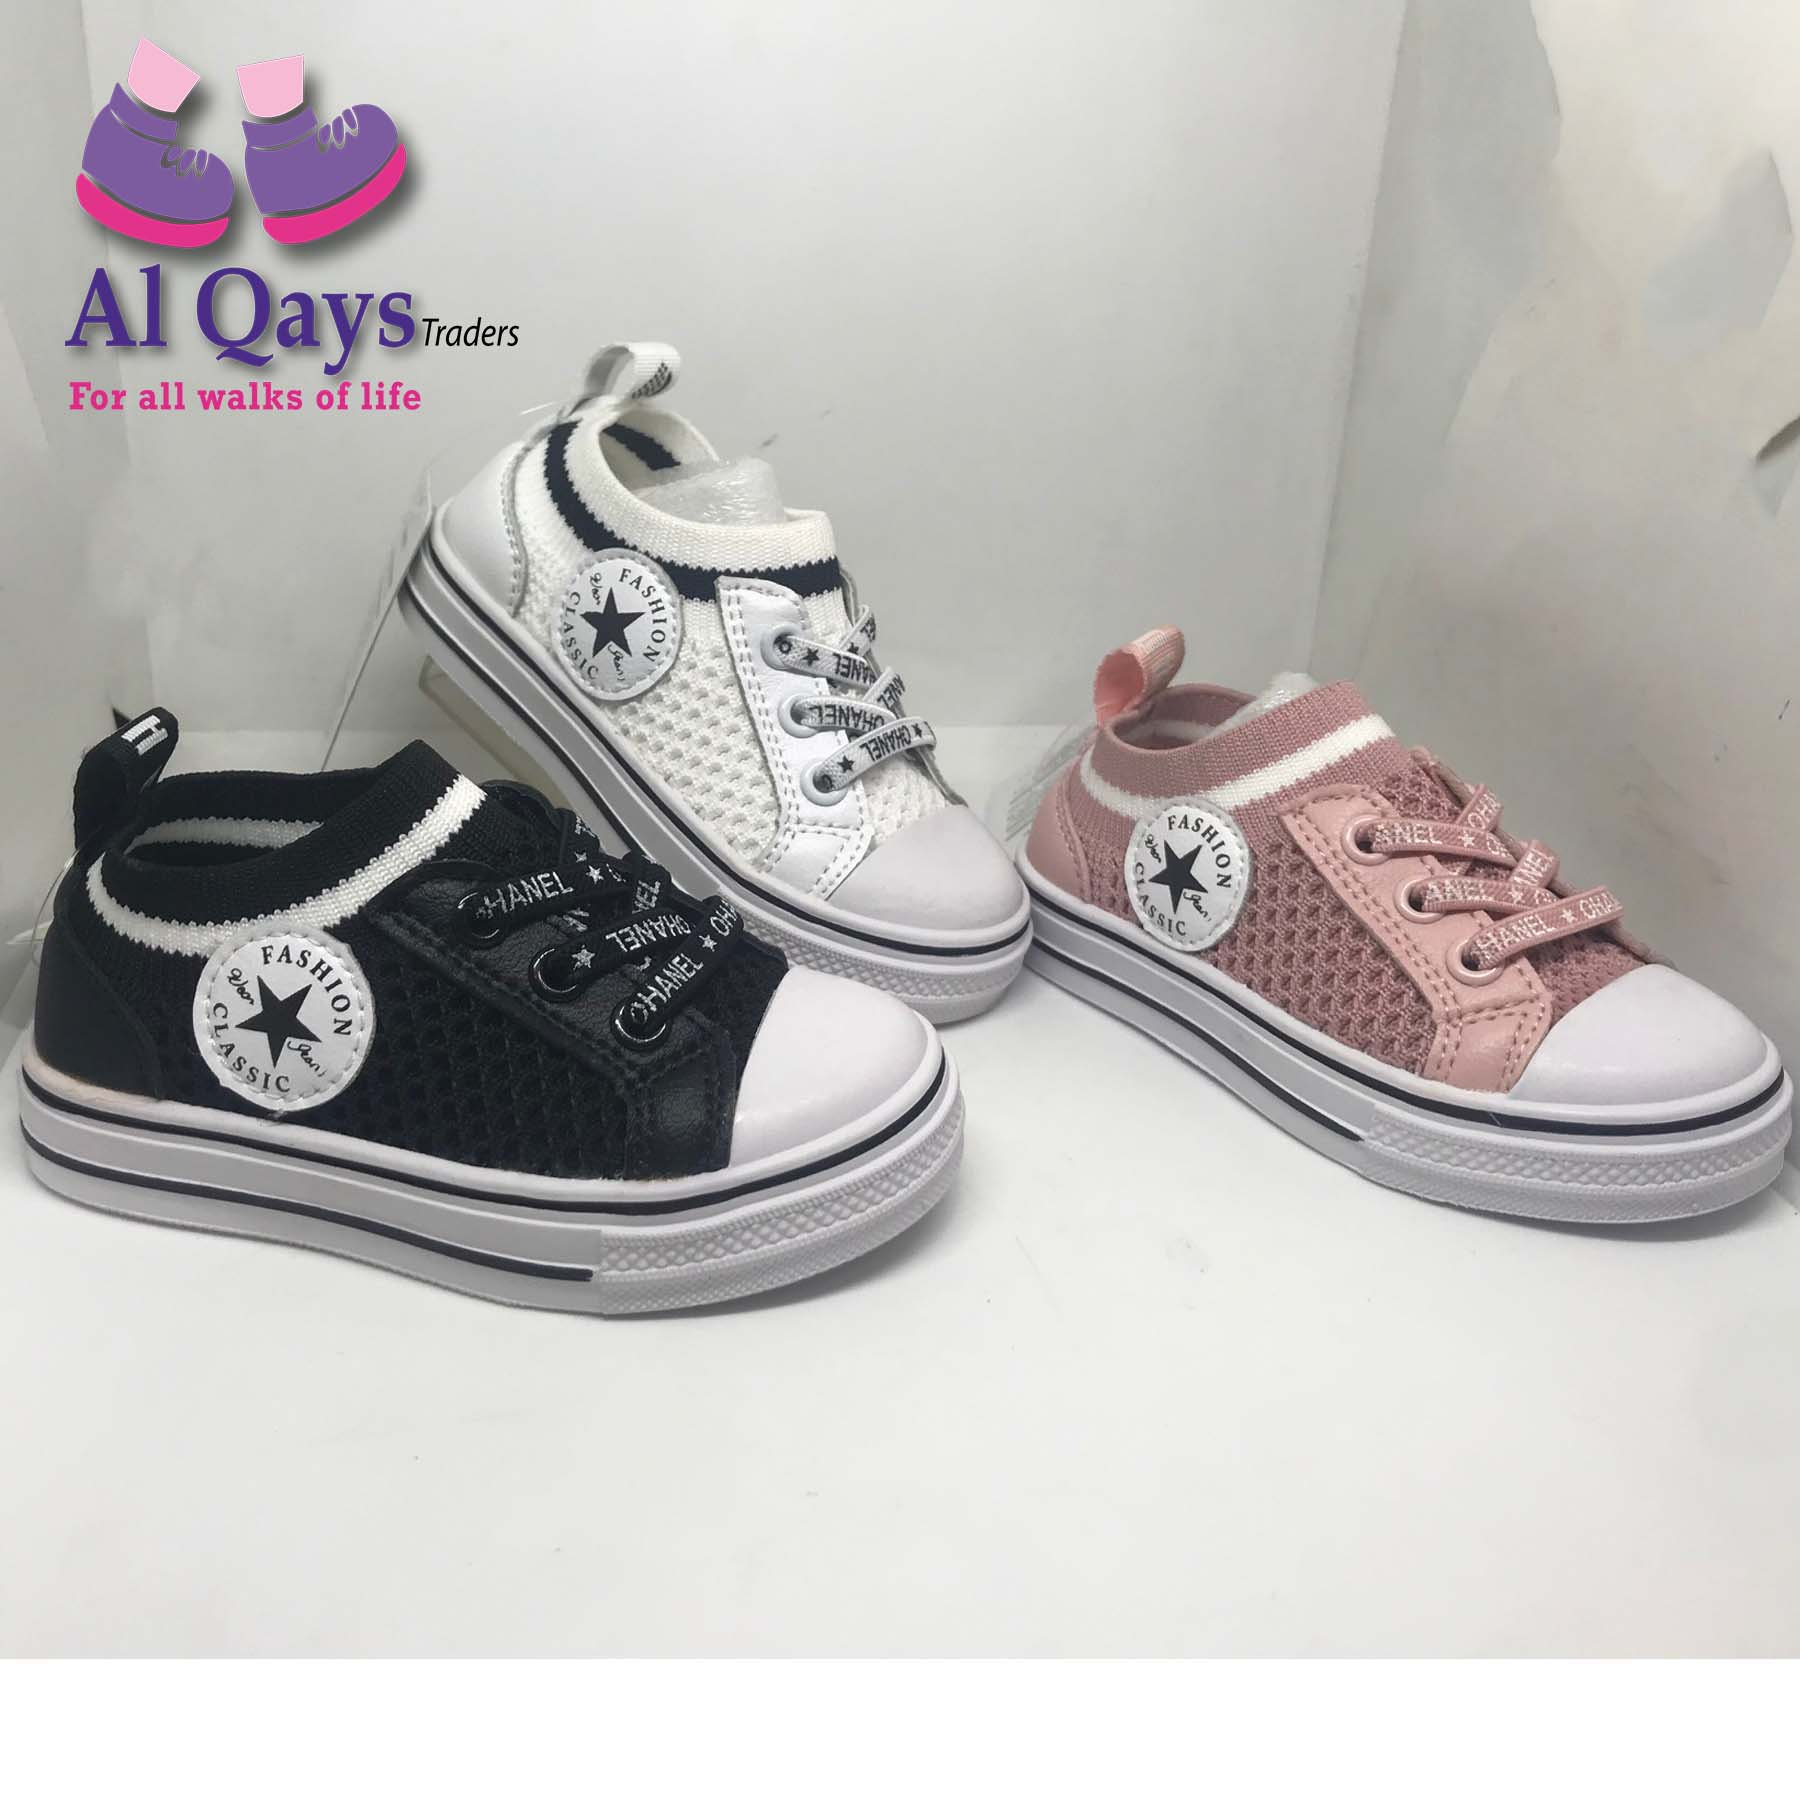 Branded HIGH QUALITY Canvas Both Baby Boy & Baby girl Shoes -age 1 to 3.5 years child shoes